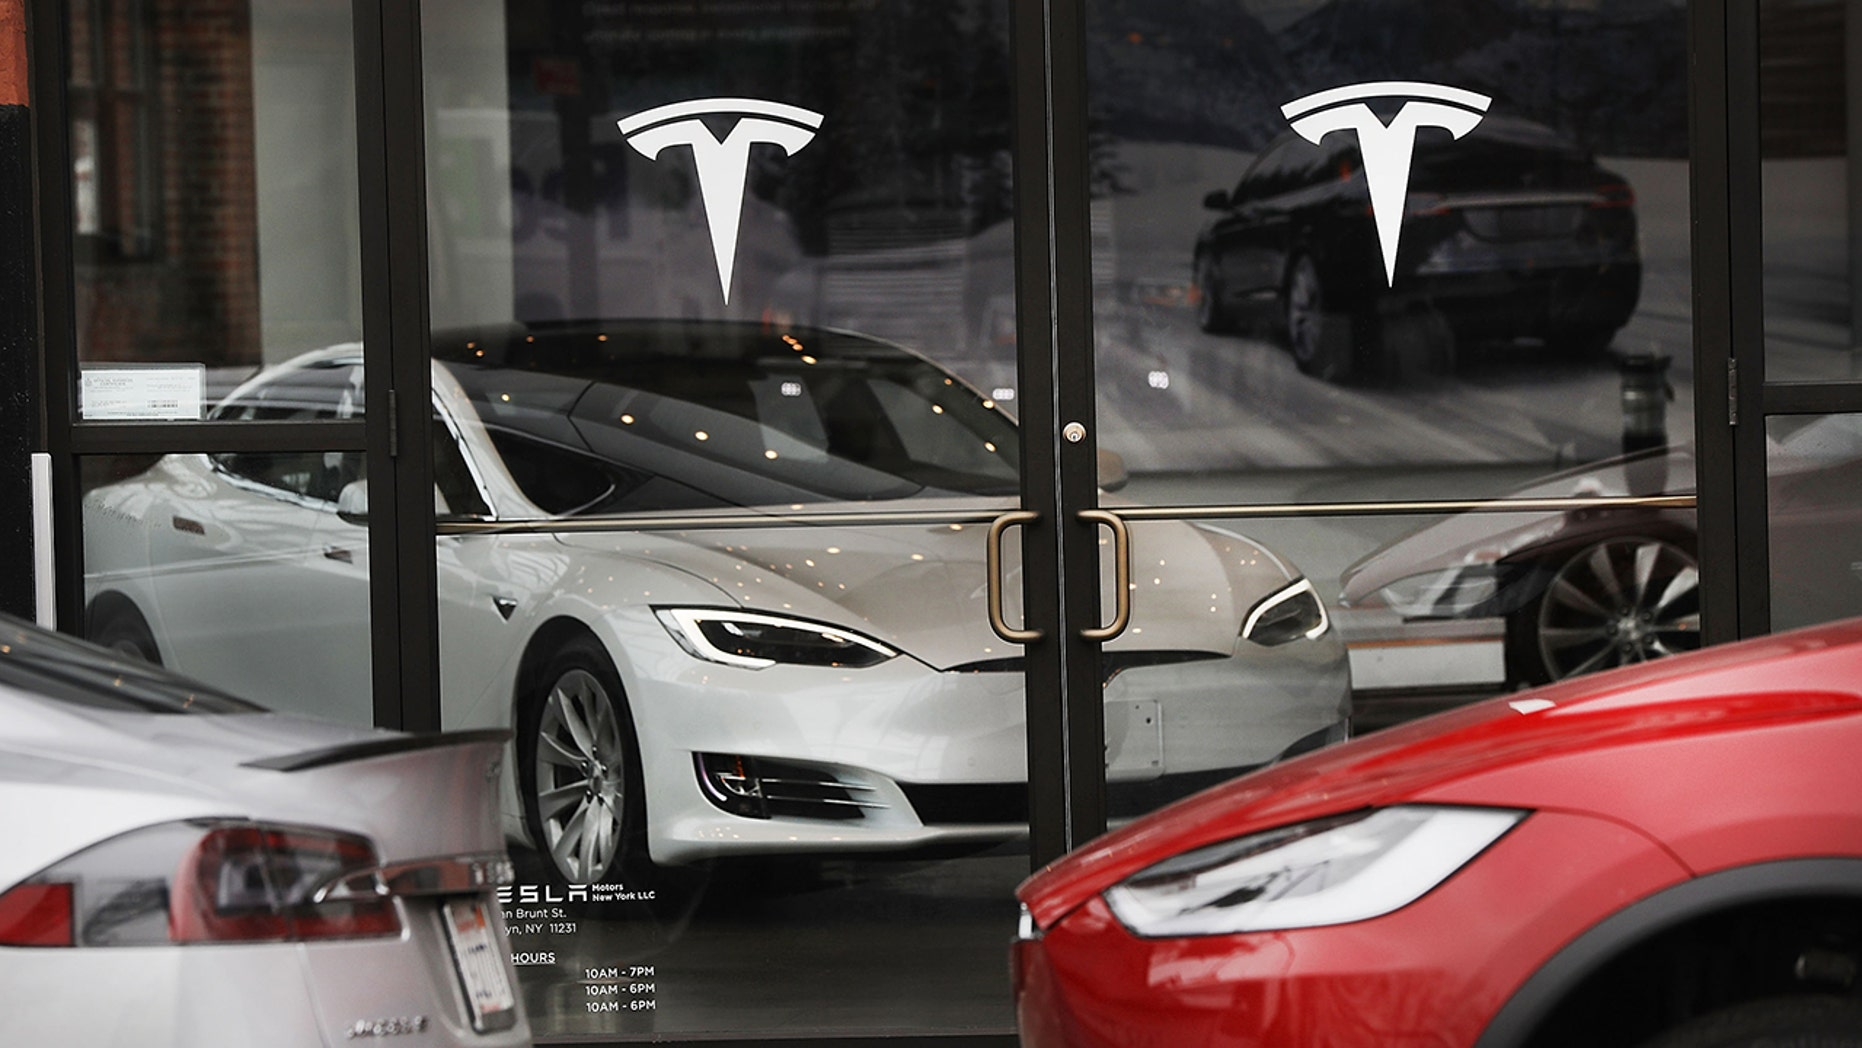 Tesla Says Full Tax Credit Will Be Available On Cars Ordered By Oct